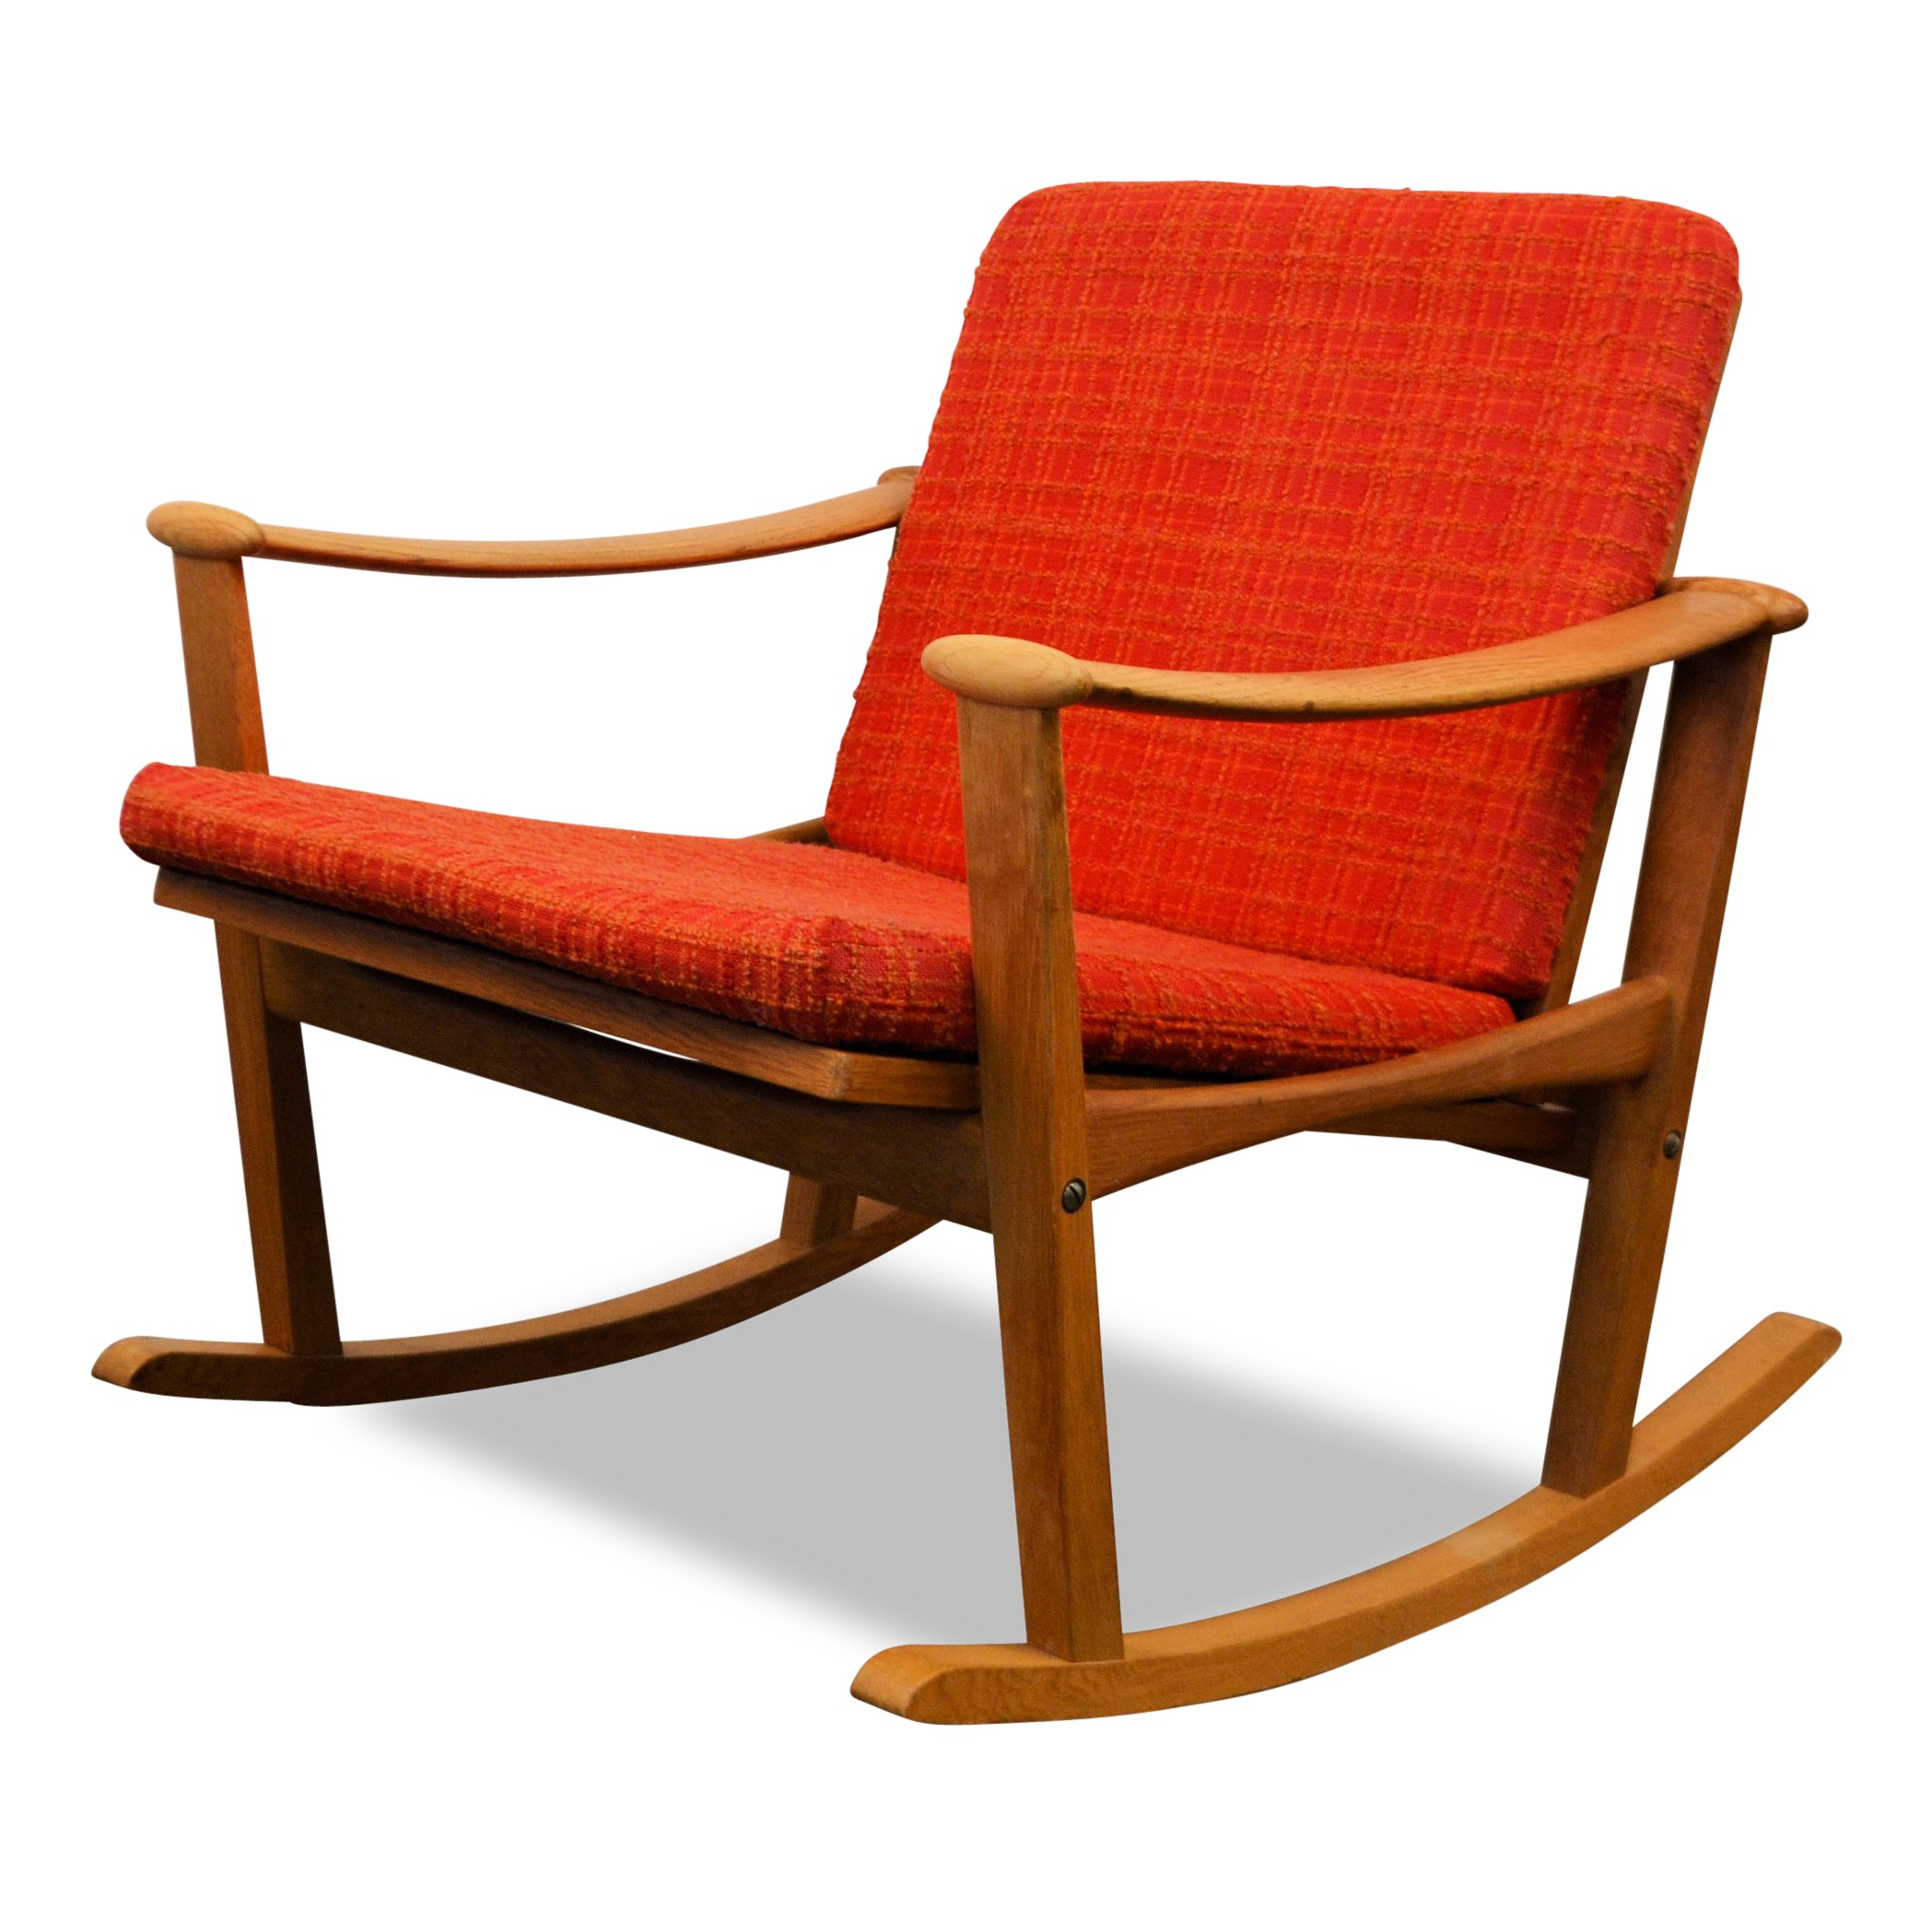 Nissen mid century Danish oak rocking chair Finn JUHL 1960s